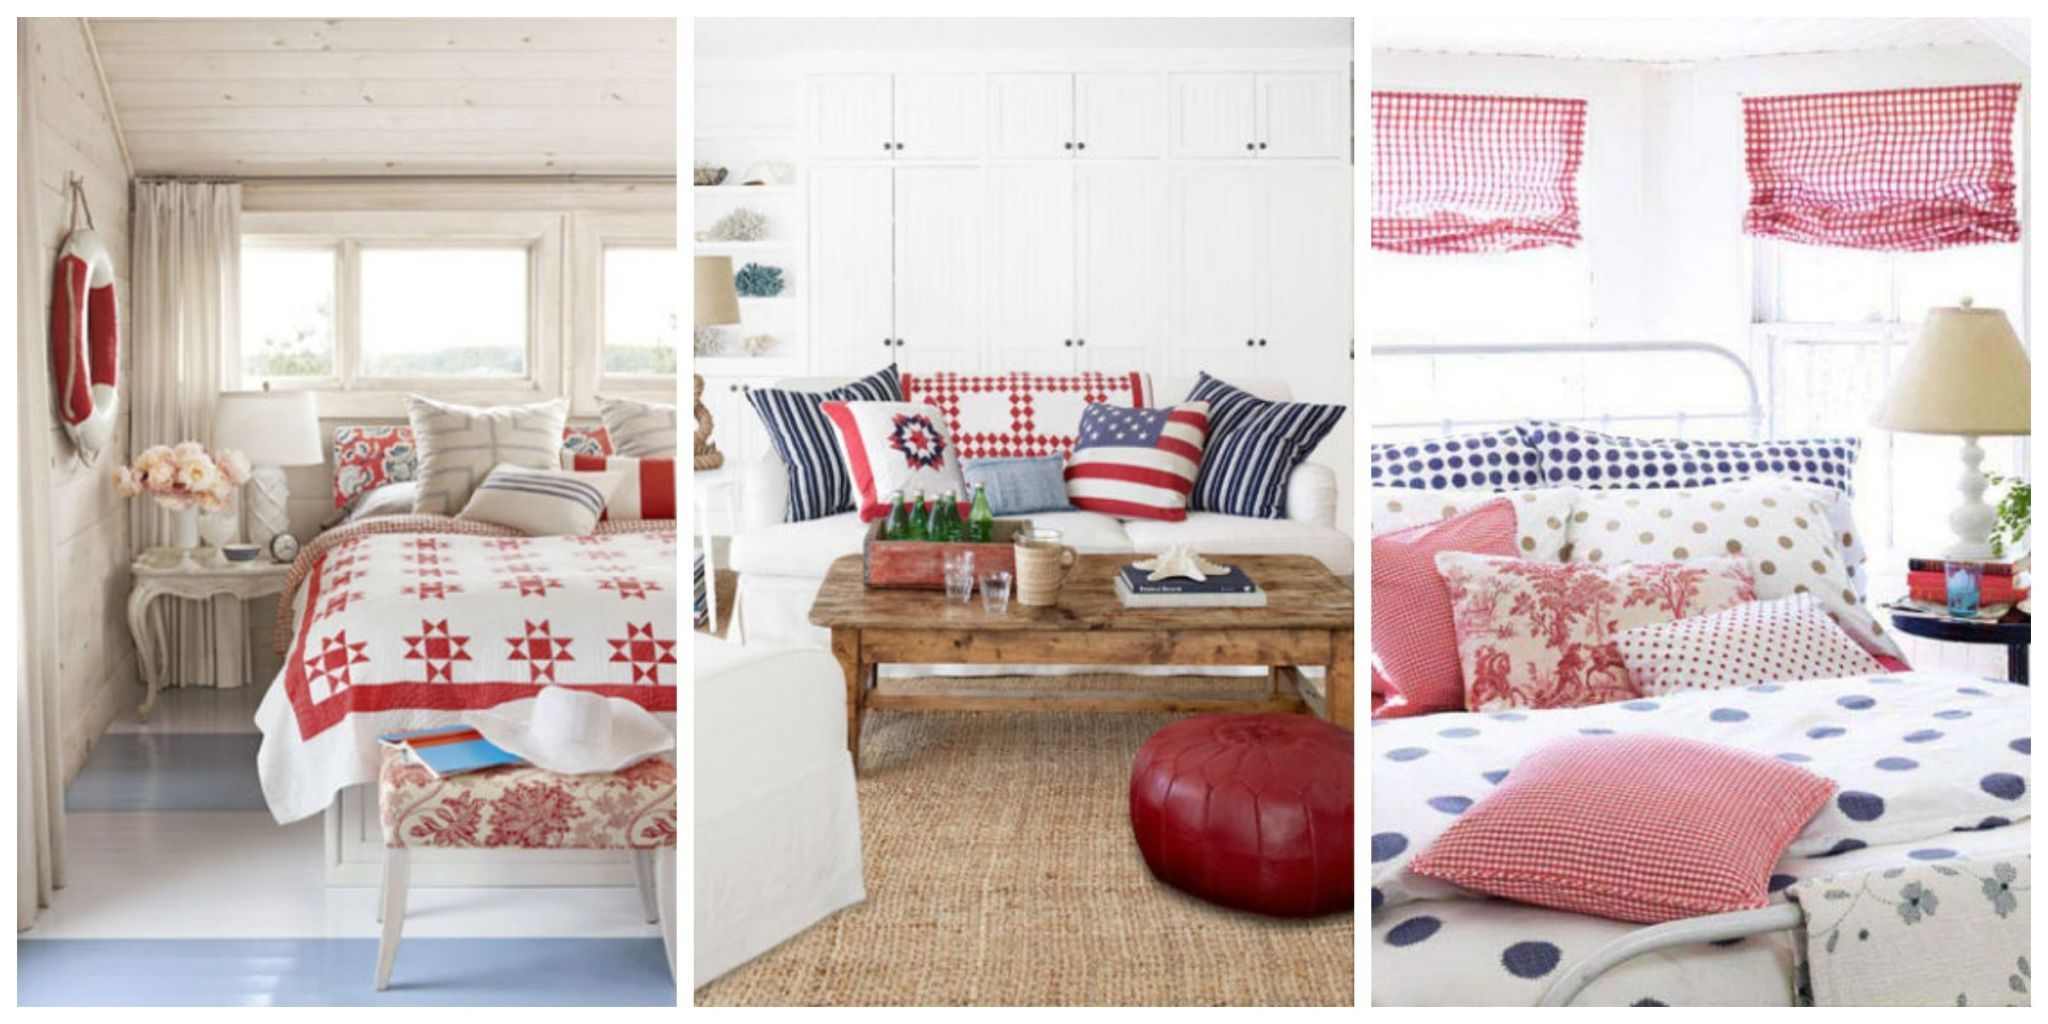 Display your stars-and-stripes style with these patriotic decorating ideas. & Patriotic Decor - 4th of July Red White and Blue Decorating Ideas